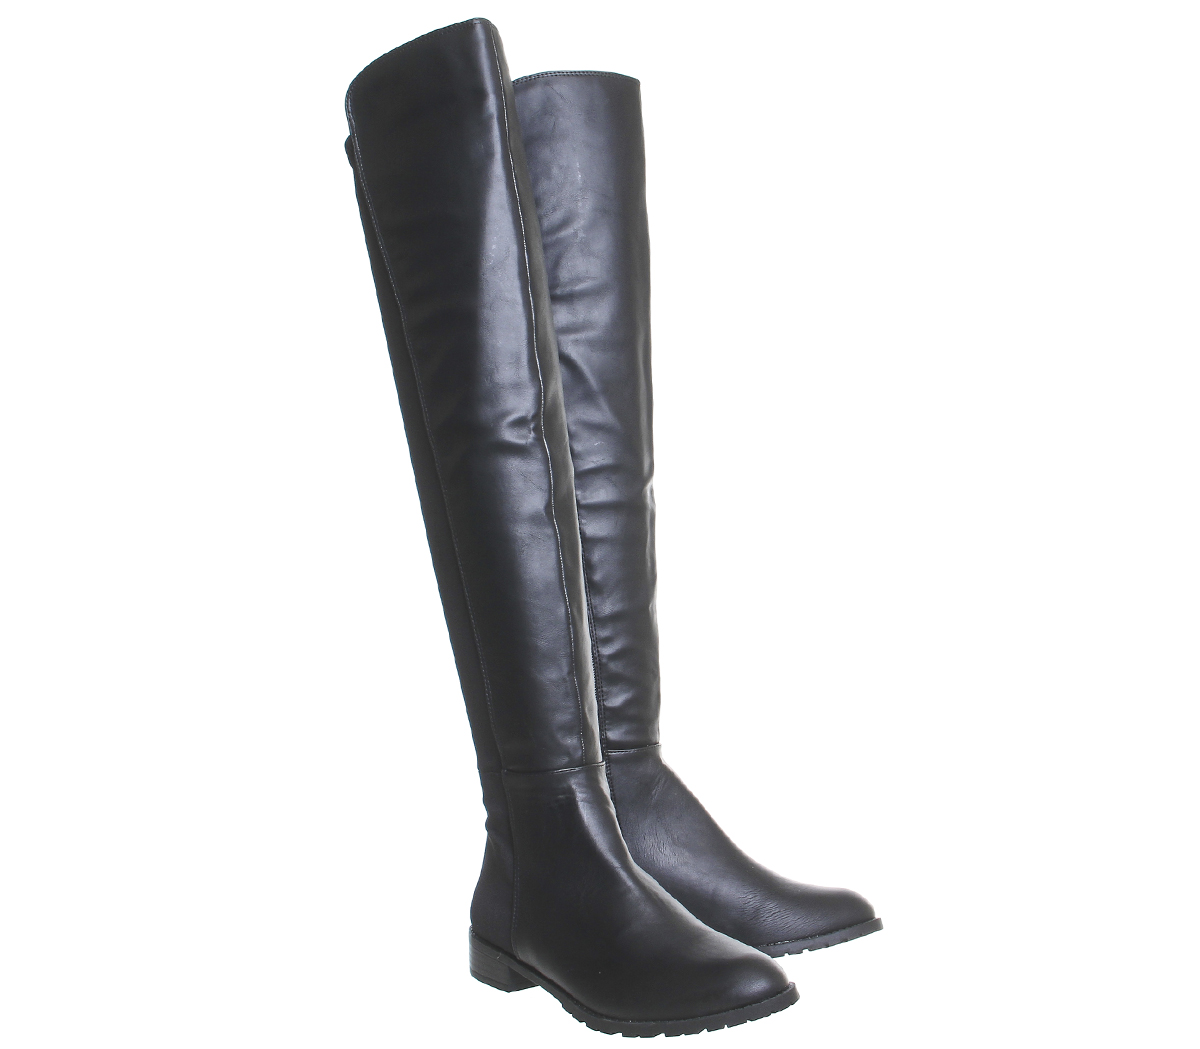 Womens Office Kiwi Flat Over The Knee Boots Black Boots  502a4bdfb3